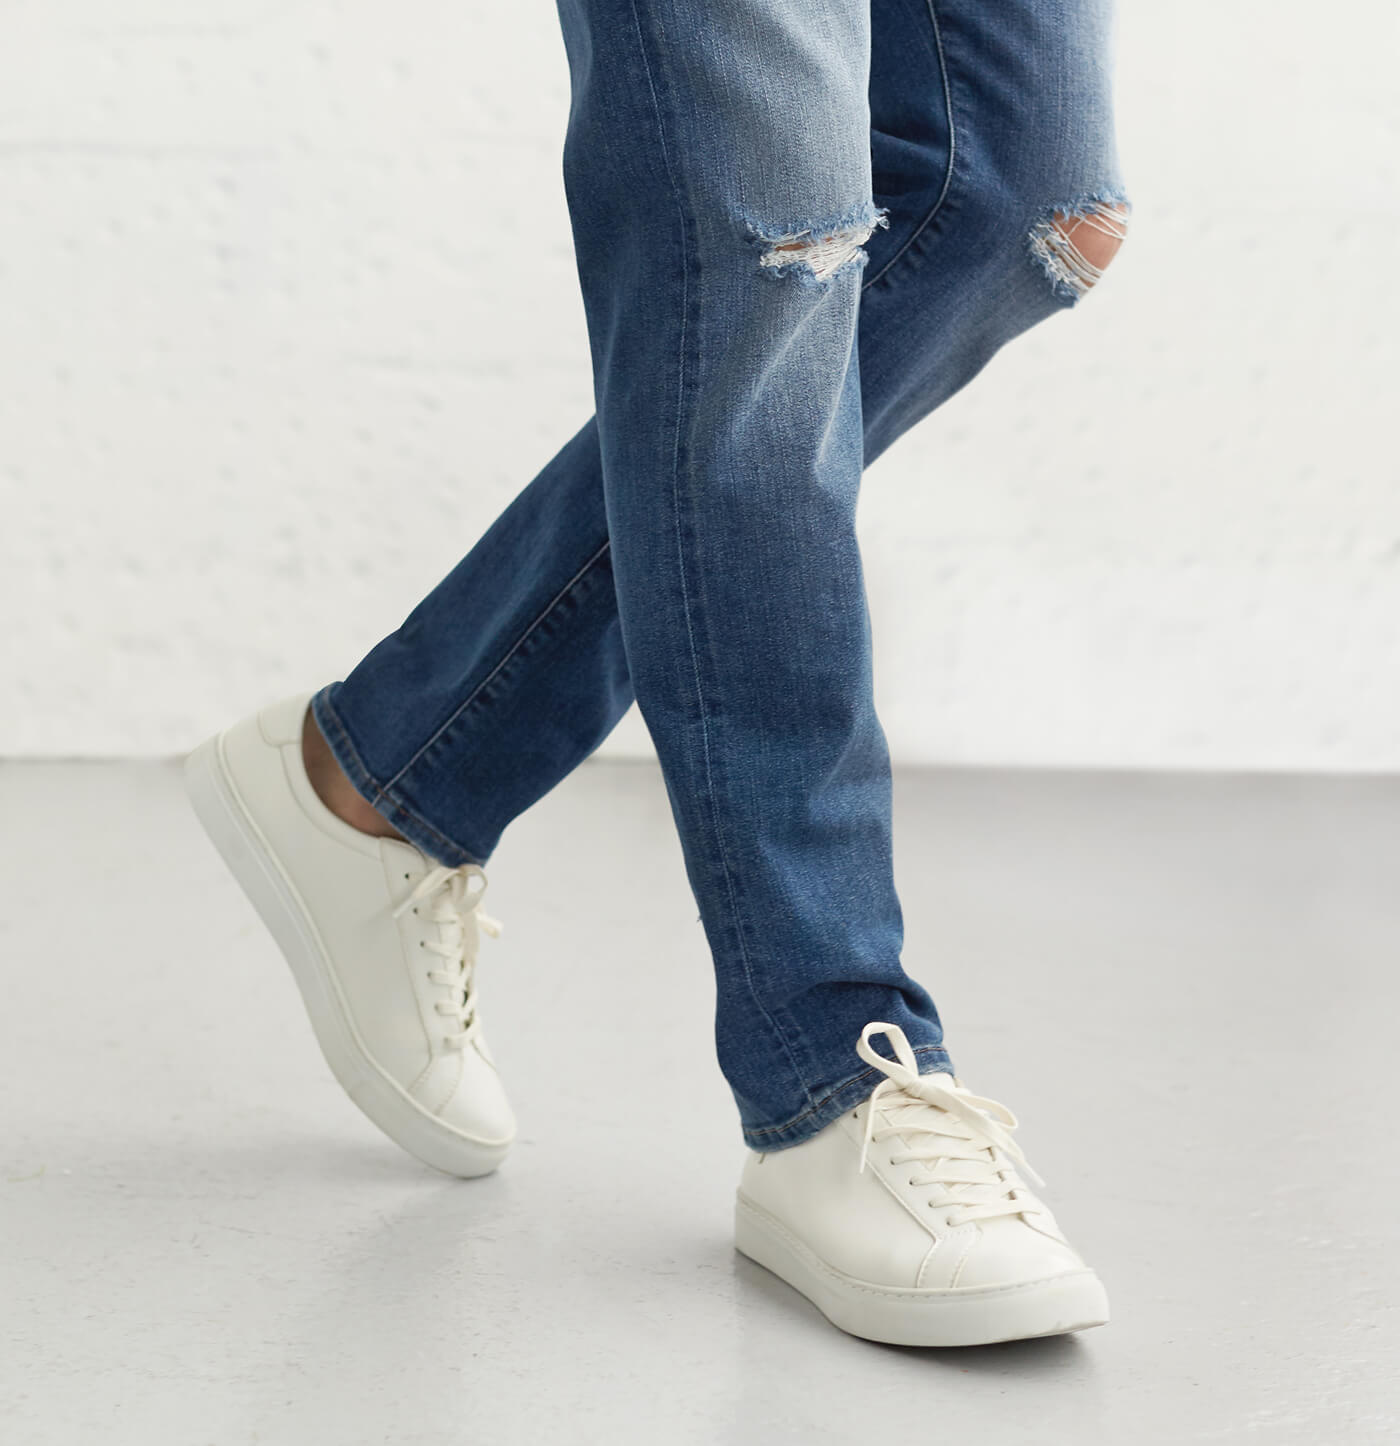 Pair shoes with jeans